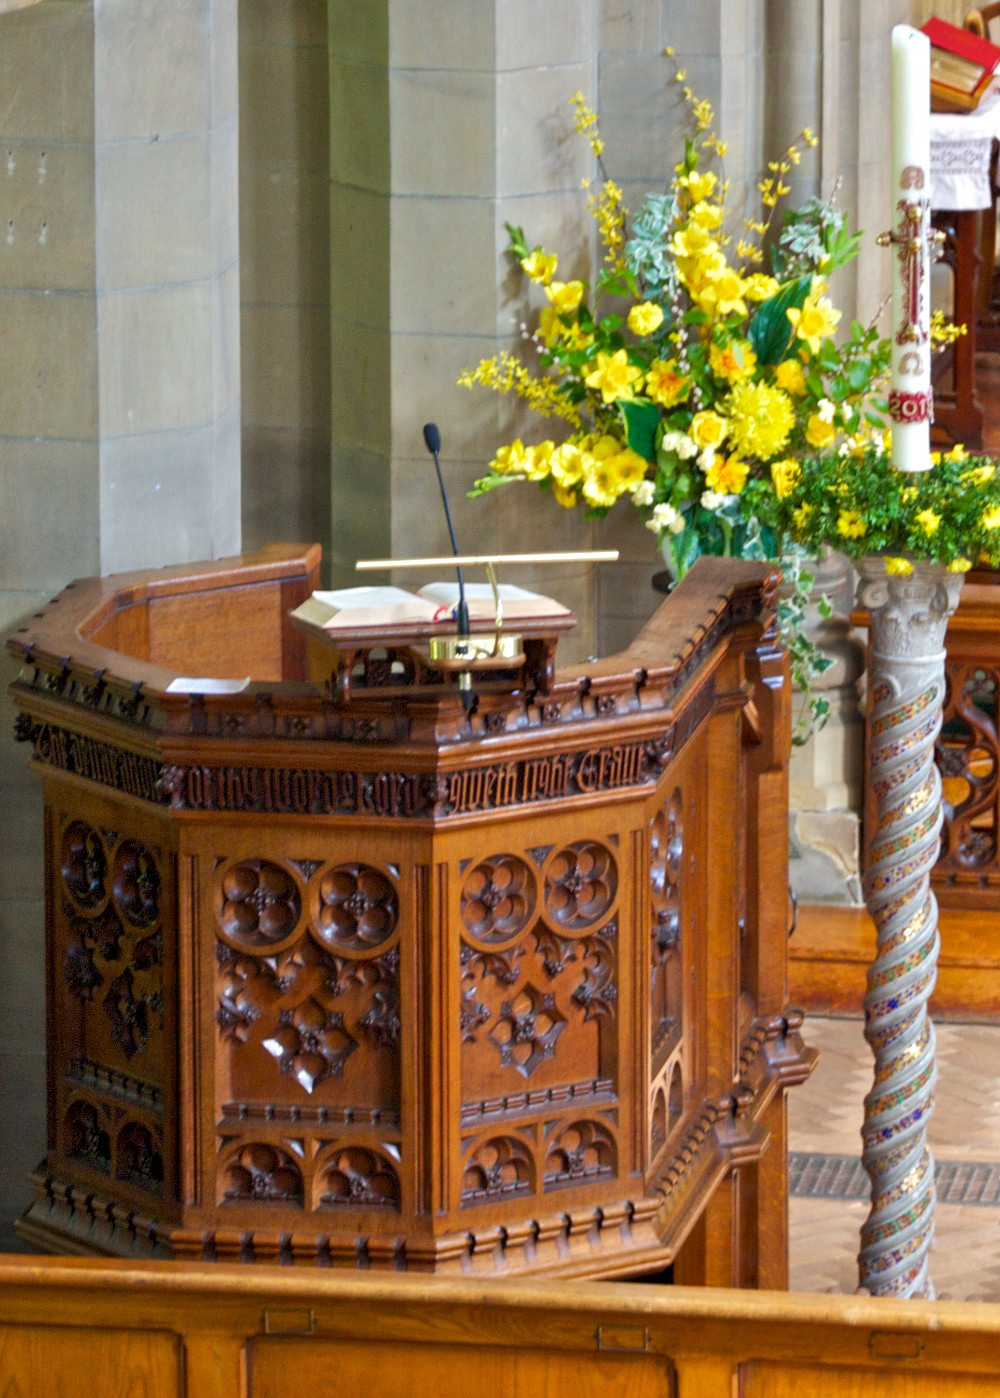 The Gillow pulpit